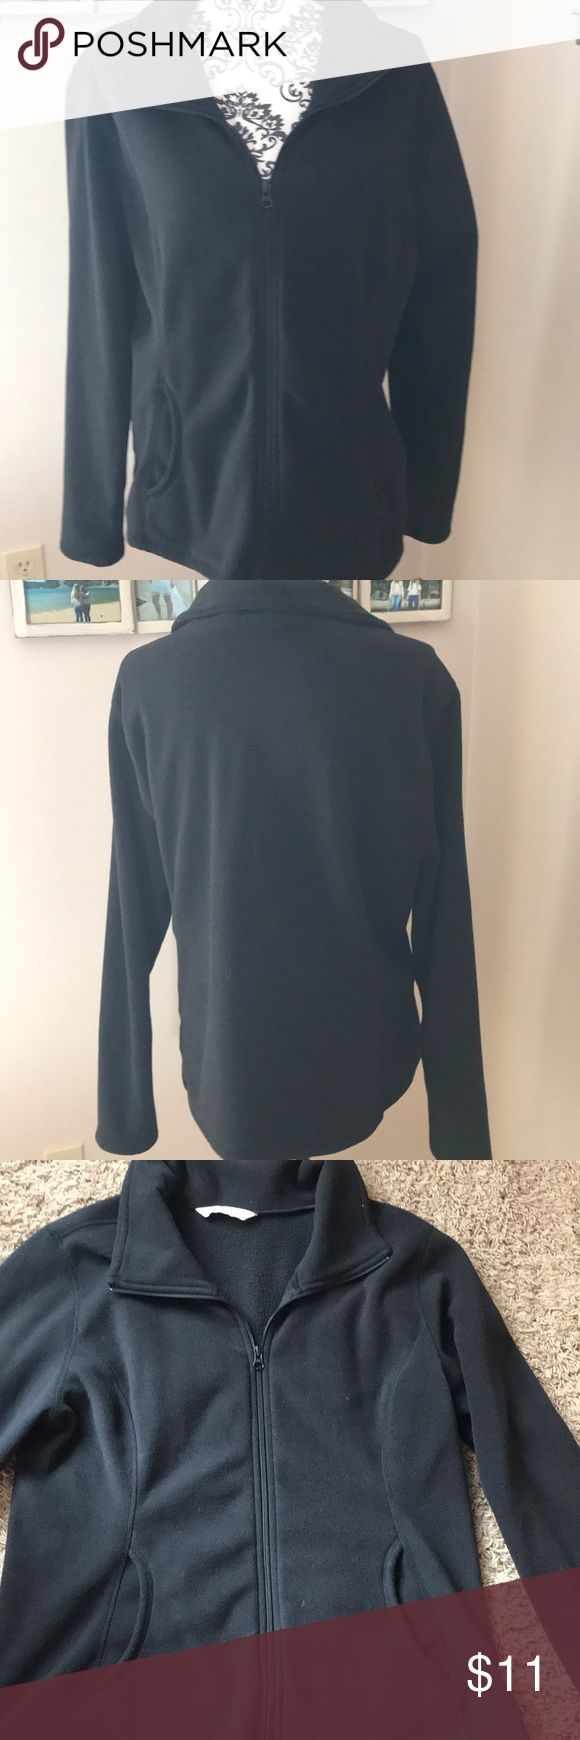 """Ladies Old Navy fleece zip up size XL Ladies black Old Navy fleece zip up. Size xl. 2 front pockets. Worn and washed once. semi fitted. Measures 21"""" pit to pit and 25"""" shoulder to hem. Any questions please ask Old Navy Tops"""